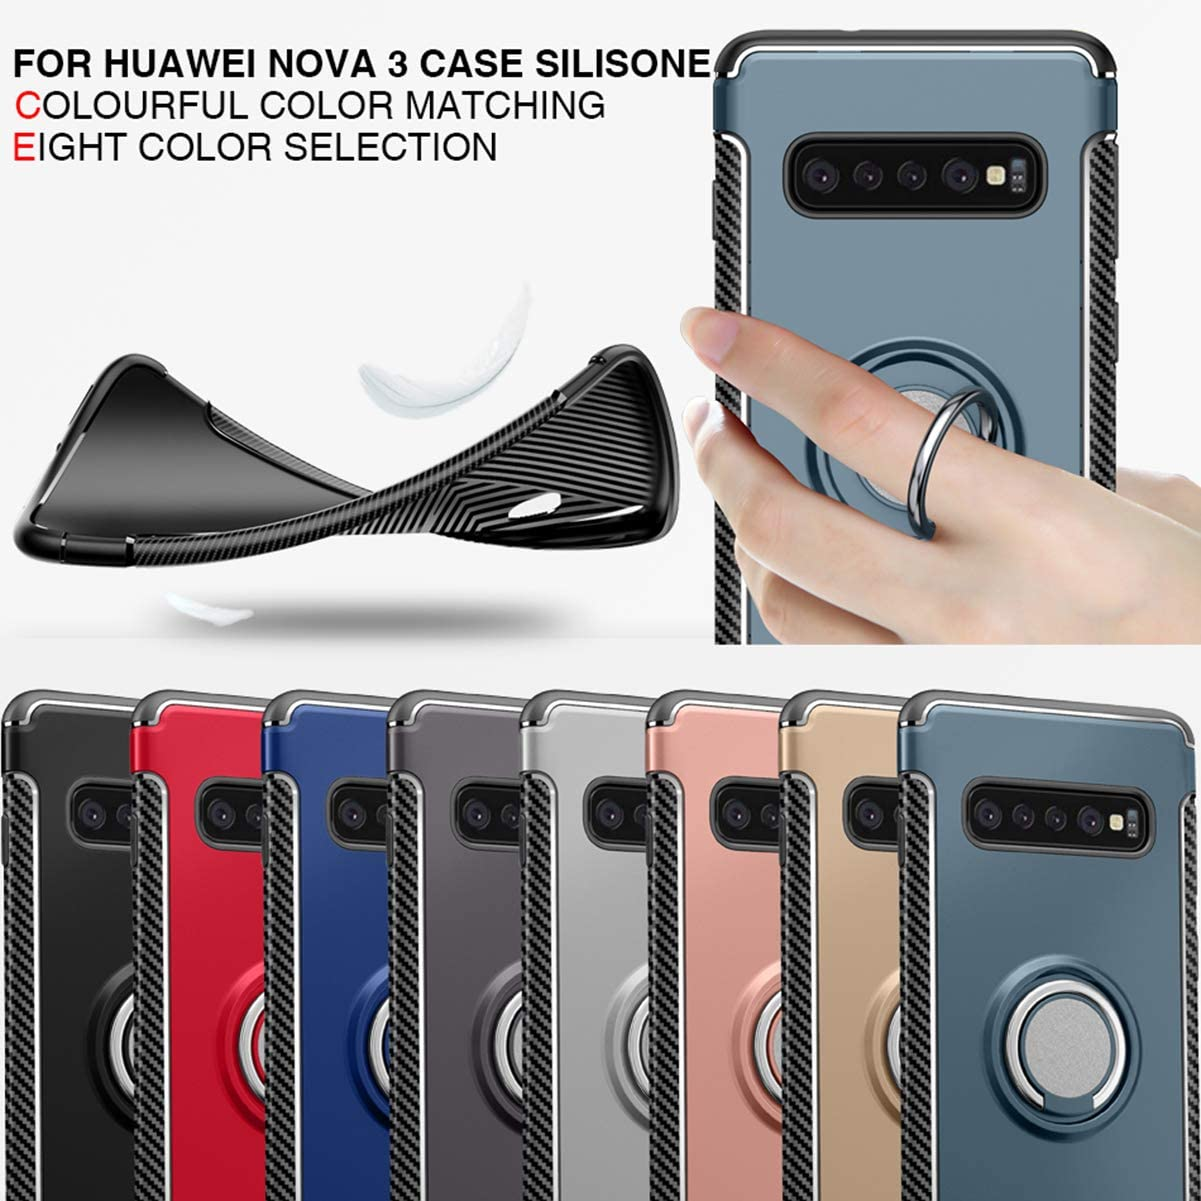 Red+Car Holder Hybrid TPU+PC Built-in Car Magnetic Suction Bracket Finger Ring Shockproof Case with car Magnetic Holder Woskko Galaxy S10 case